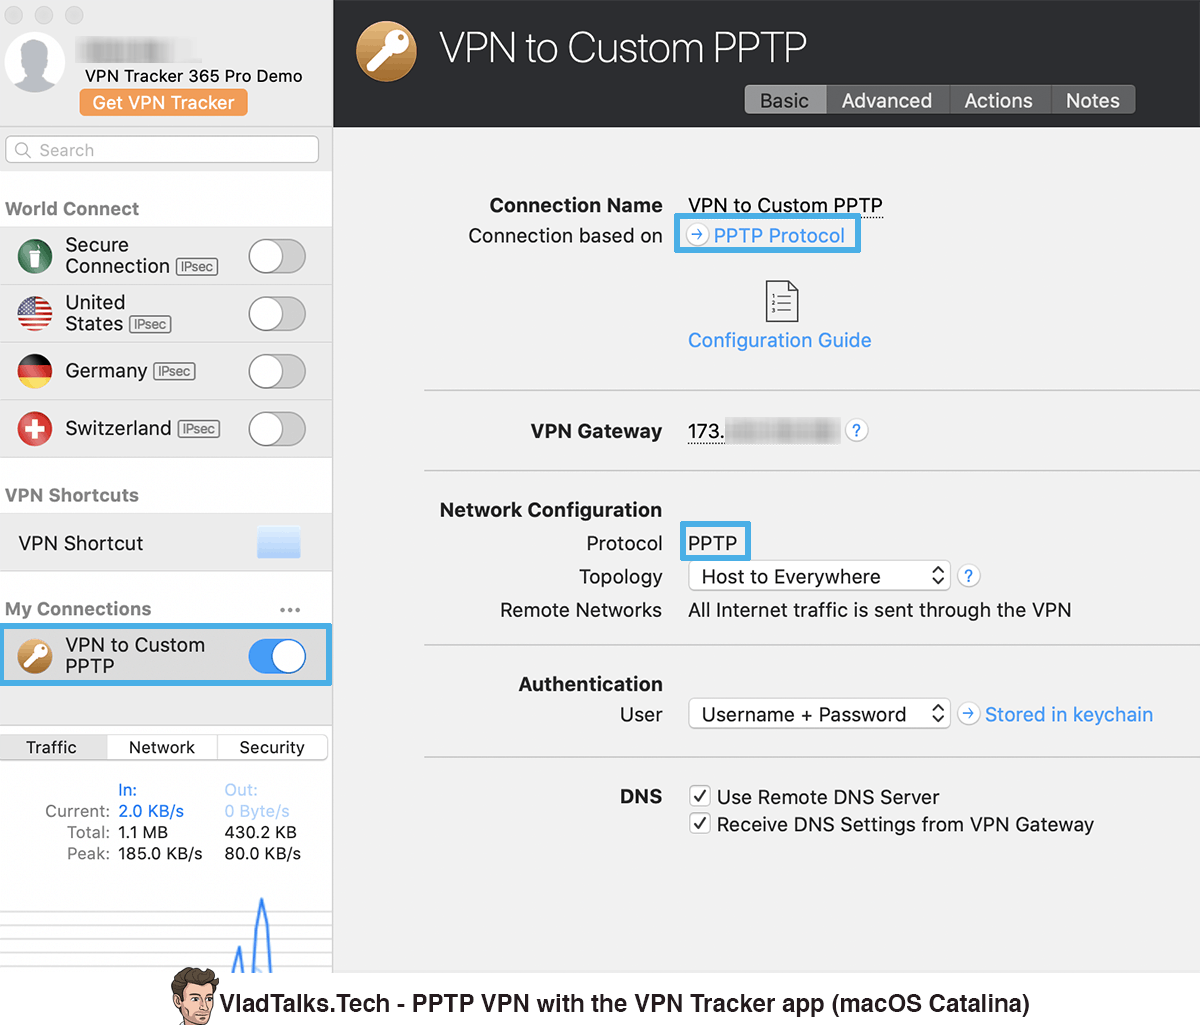 How to set up a PPTP VPN on macOS Catalina - VPN Tracker client application